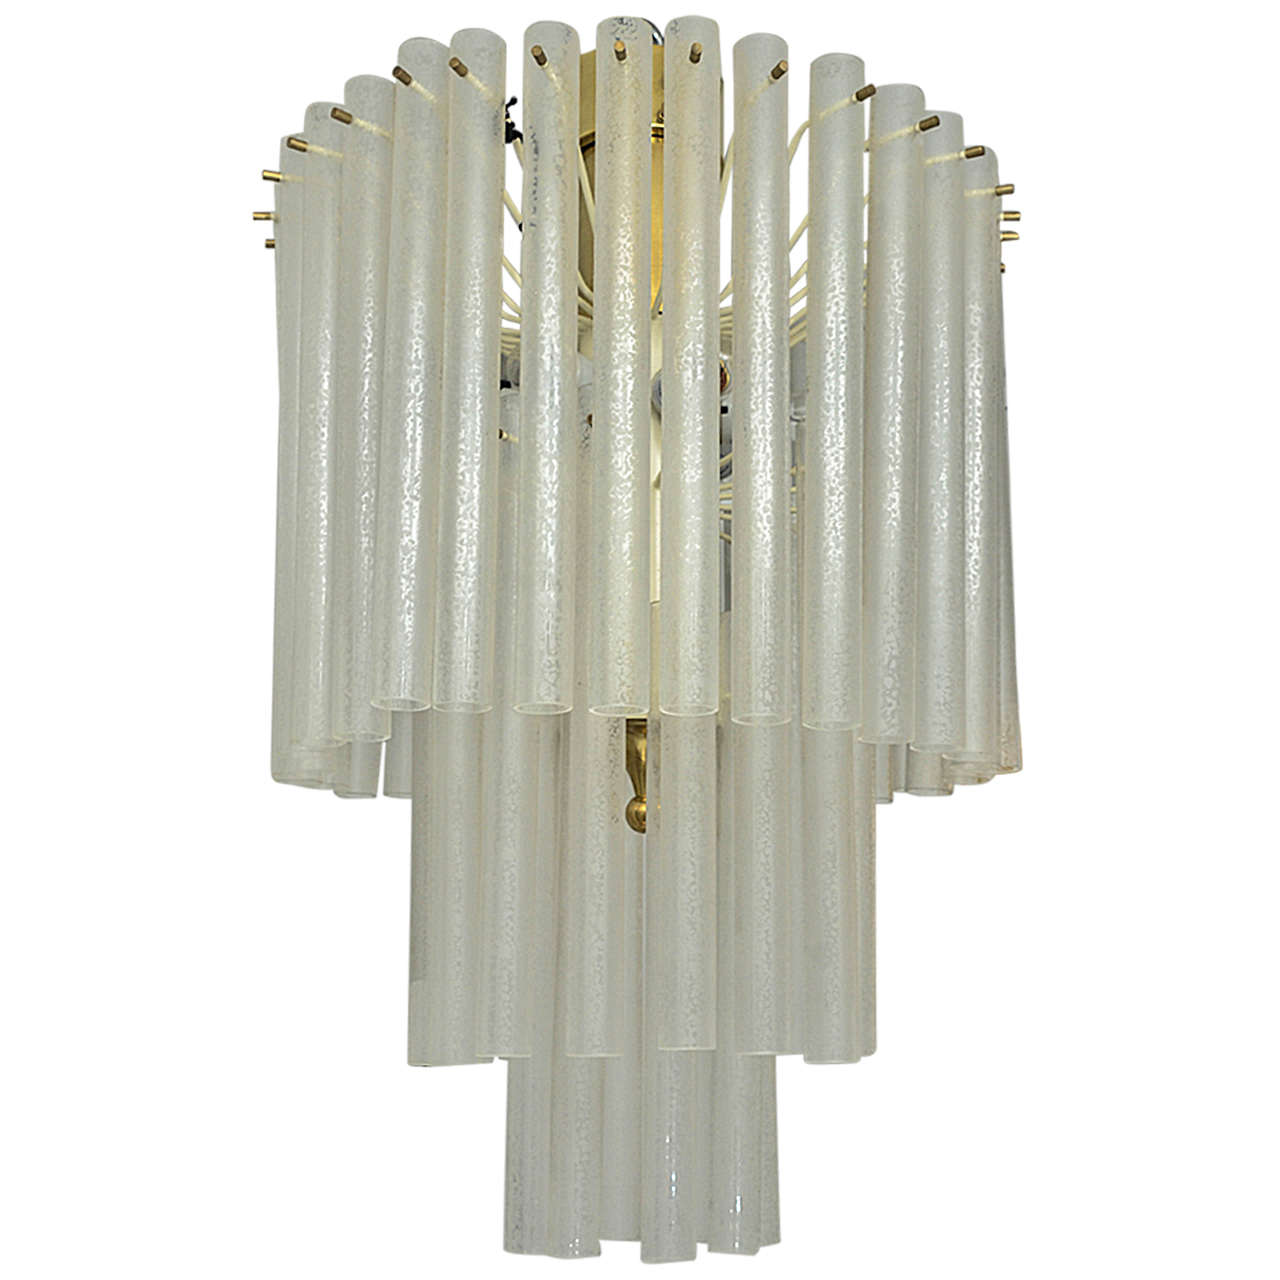 Three-Tier Chandelier Composed of Multiple Frosted Glass Tubes by Venini